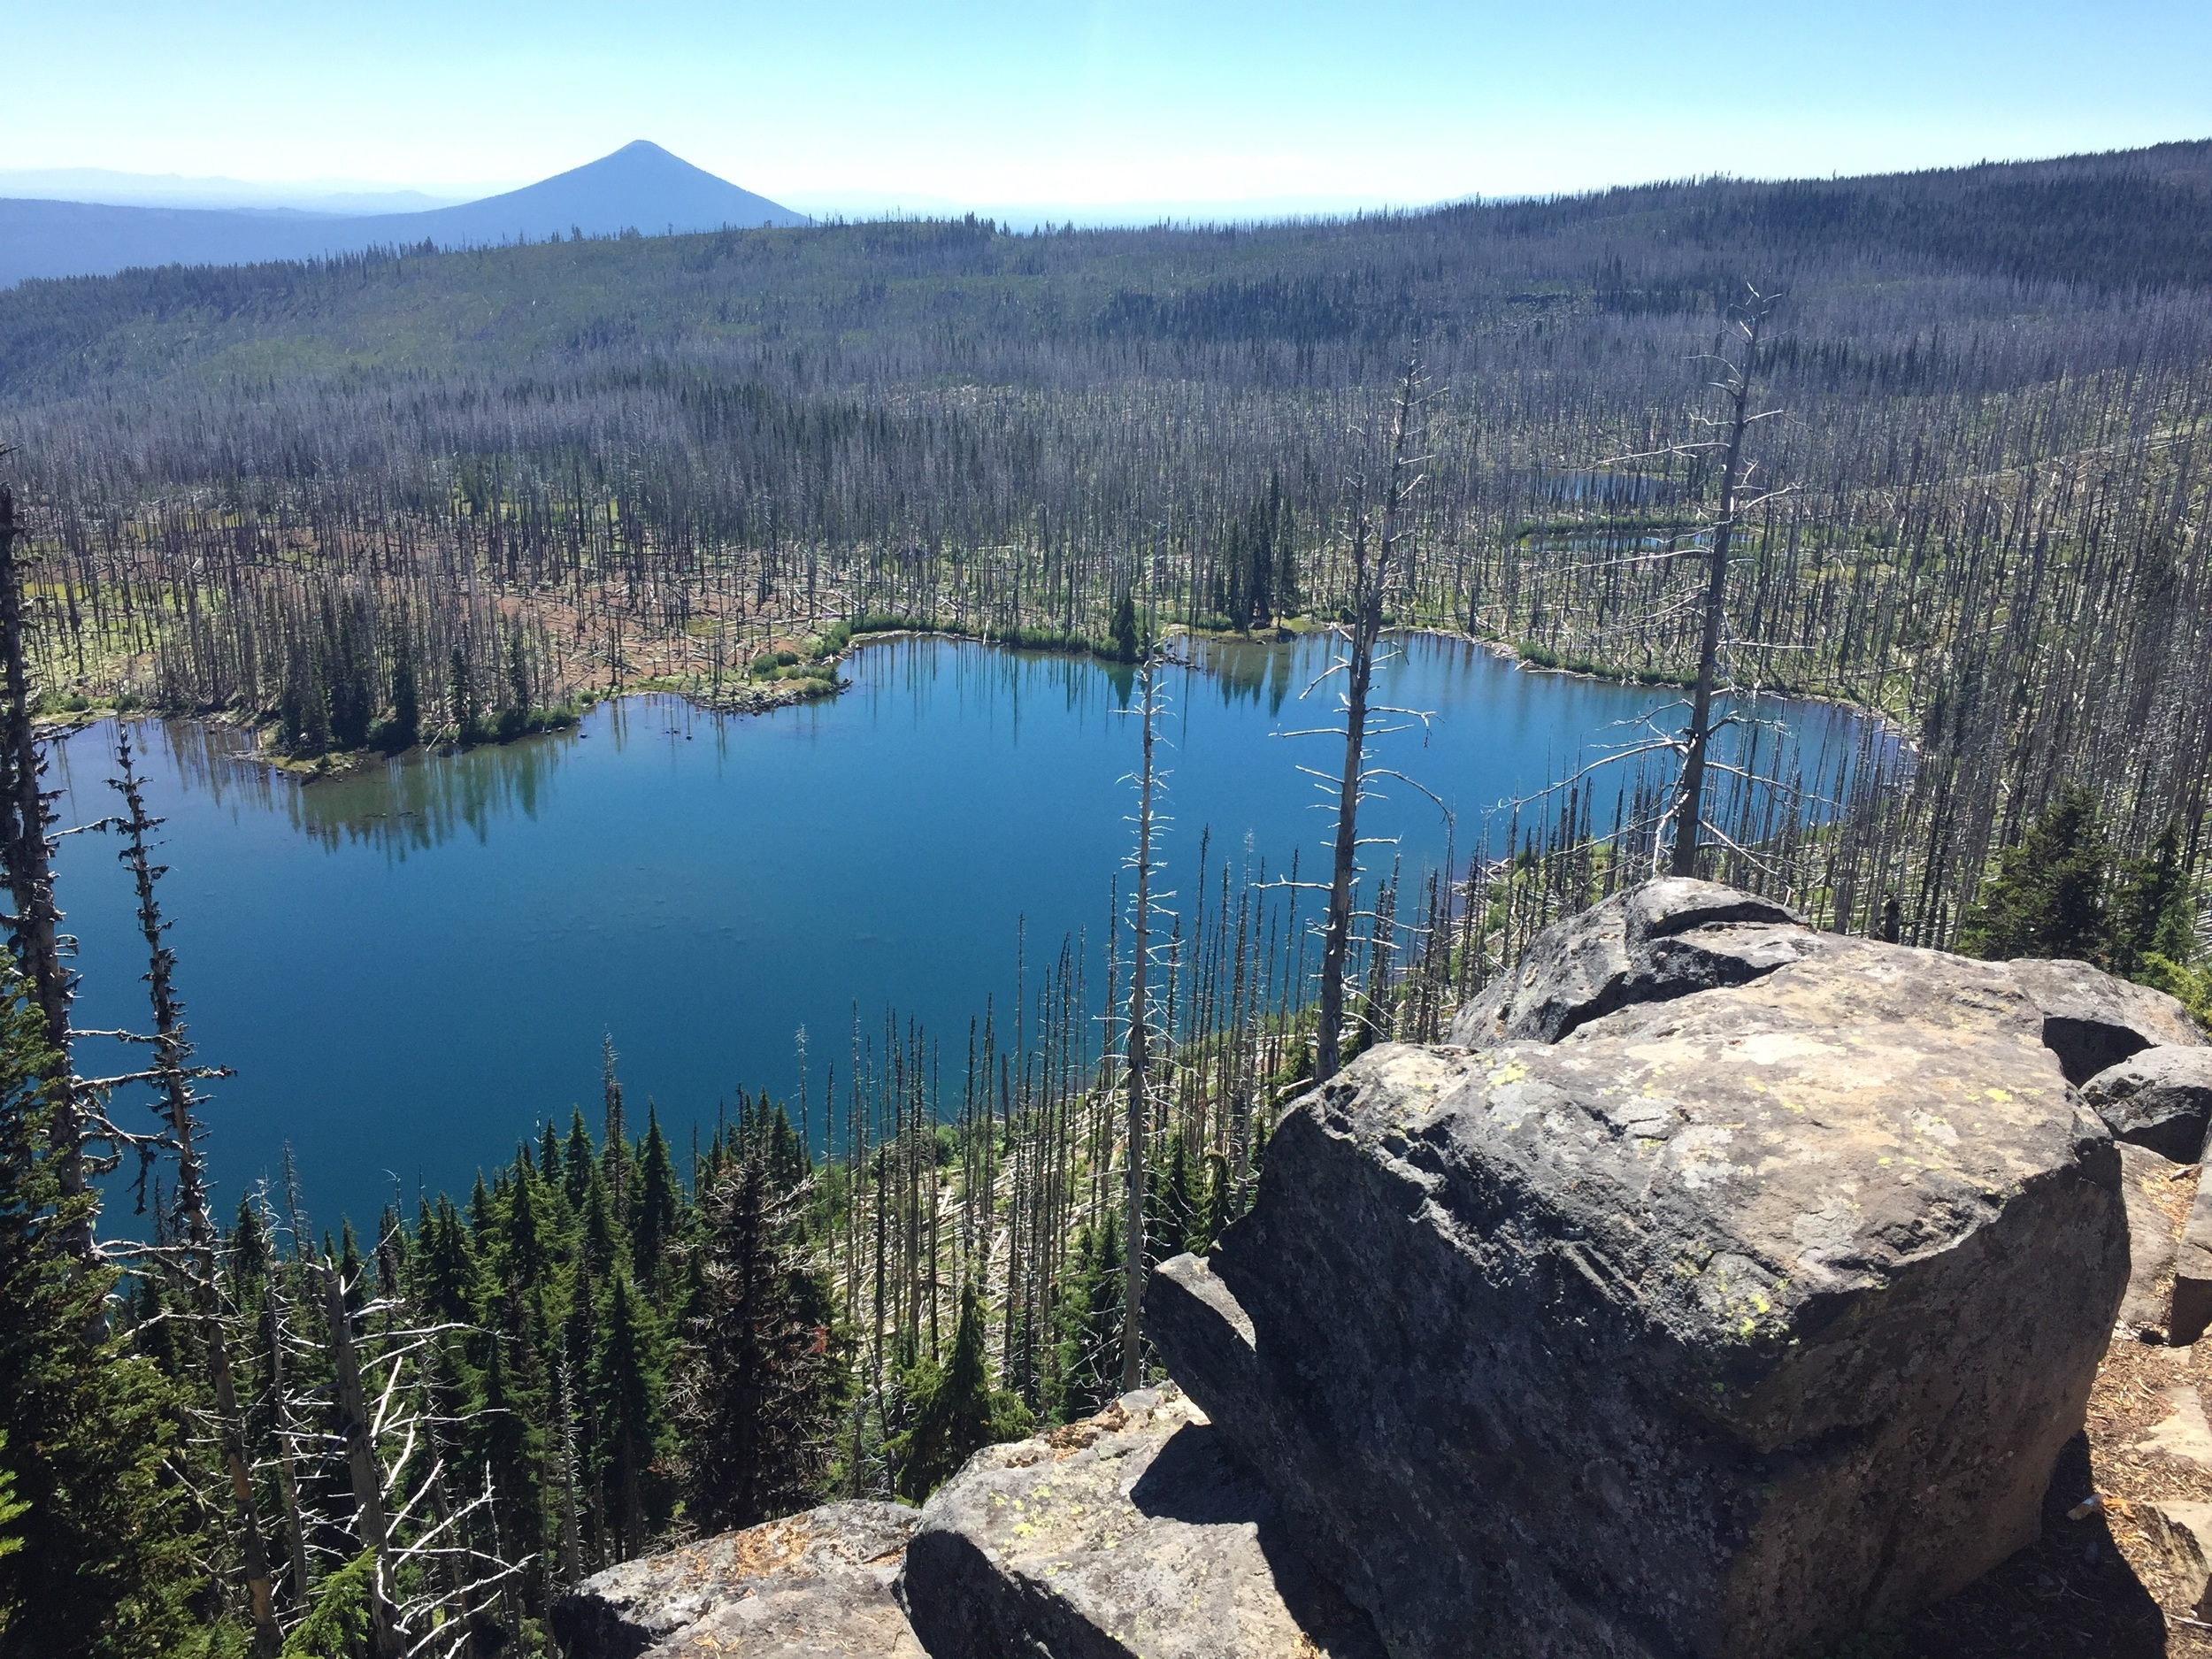 Distant Black Butte rises beyond Koko Lake, in the middle of a huge burn zone